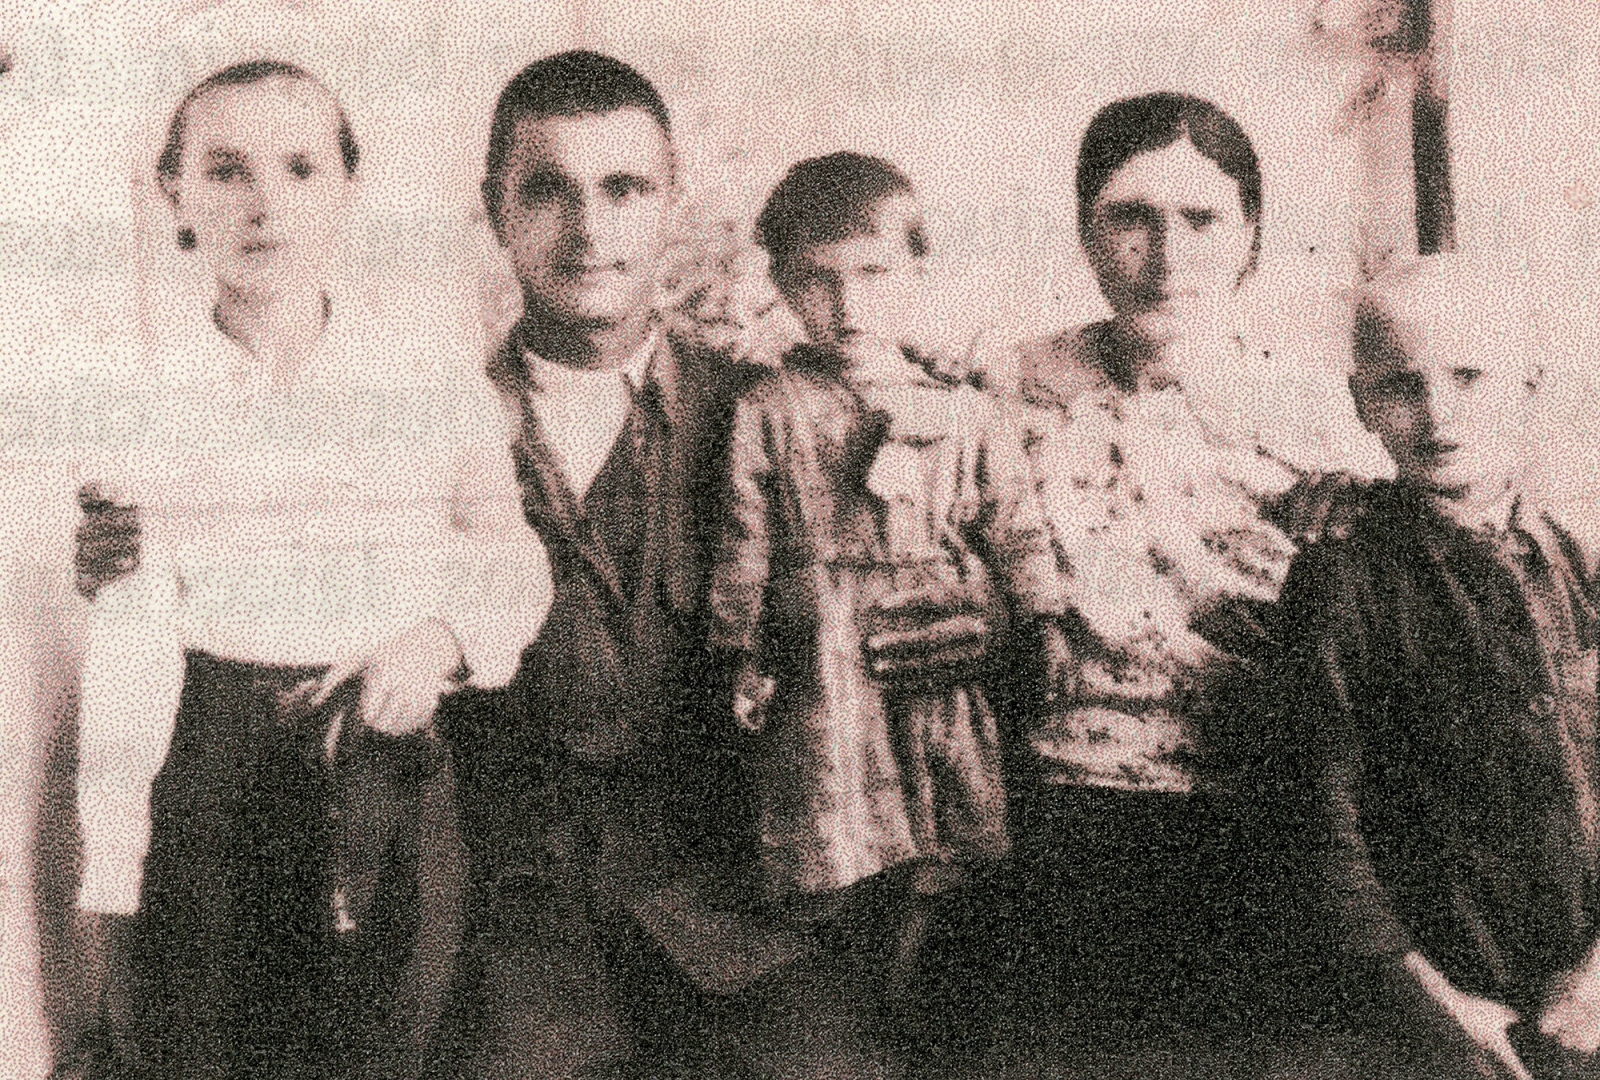 "We try to recover a lost image of Ana and Pasha with their family and their father, Nichifor, who fled the Soviets, due to his brother being a local mayor in Moldova. Ana and Pasha do not know what happened to their father after they were deported except that he was captured in Romania and sent to a gulag near Odessa. He died in prison of unknown causes. This photo was taken before the family was deported and the original image has been lost. It is interesting to think about the availability of images for this story and how much easier it is to preserve events and memory today, ""The children nowadays are smarter, they remember everything. They are born with mobiles in their hands. We weren't so lucky."" -Pasha Ana remembers the last night with their father, ""One night, around midnight, our father, before fleeing to Romania, knocked on the window and gave us a box of sweets, saying to us, 'Your father is going away alone, I don't know where, but you must listen to your mother because she is staying behind to raise you.'"""